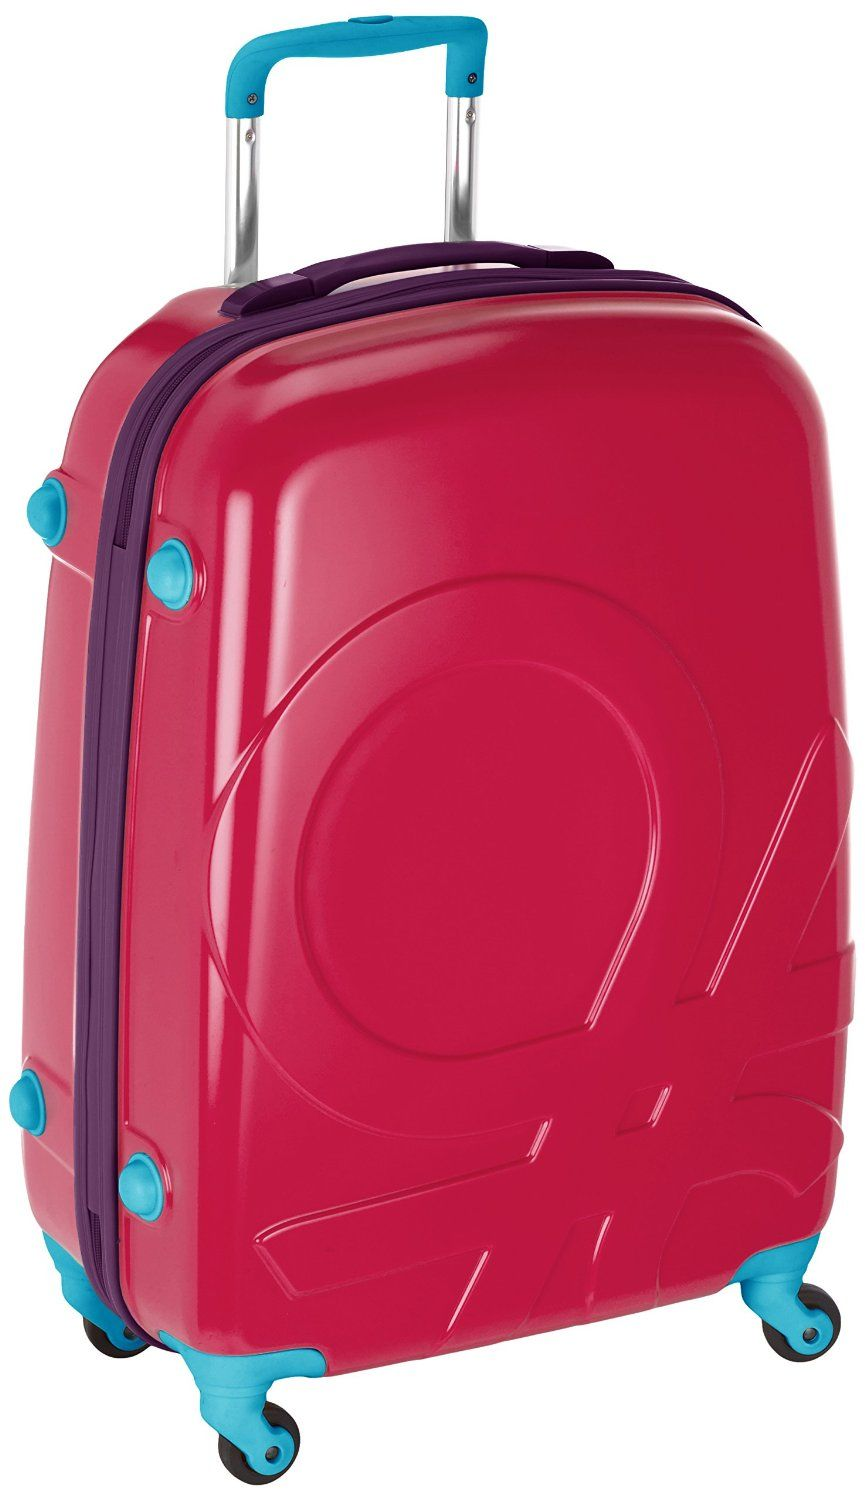 ae5654a6311 Stand out in the luggage crowd with the Pink Benetton Roller Case with 4  rotating wheels